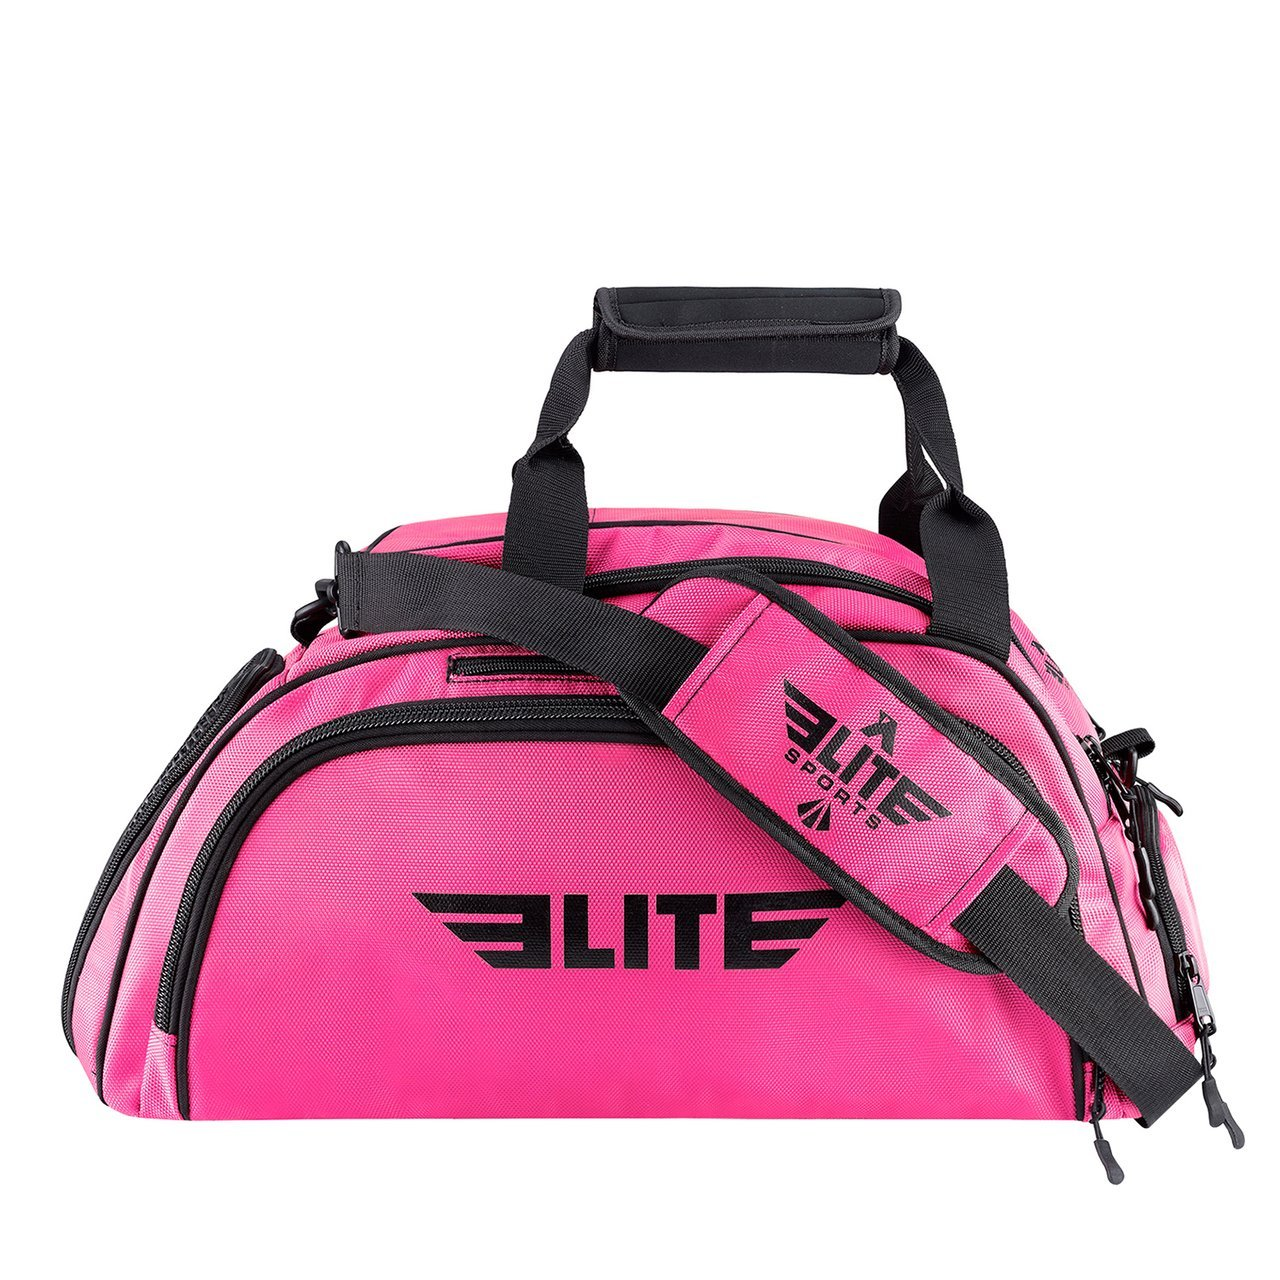 Elite Sports Warrior Series Pink Medium Duffel Taekwondo Gear Gym Bag & Backpack